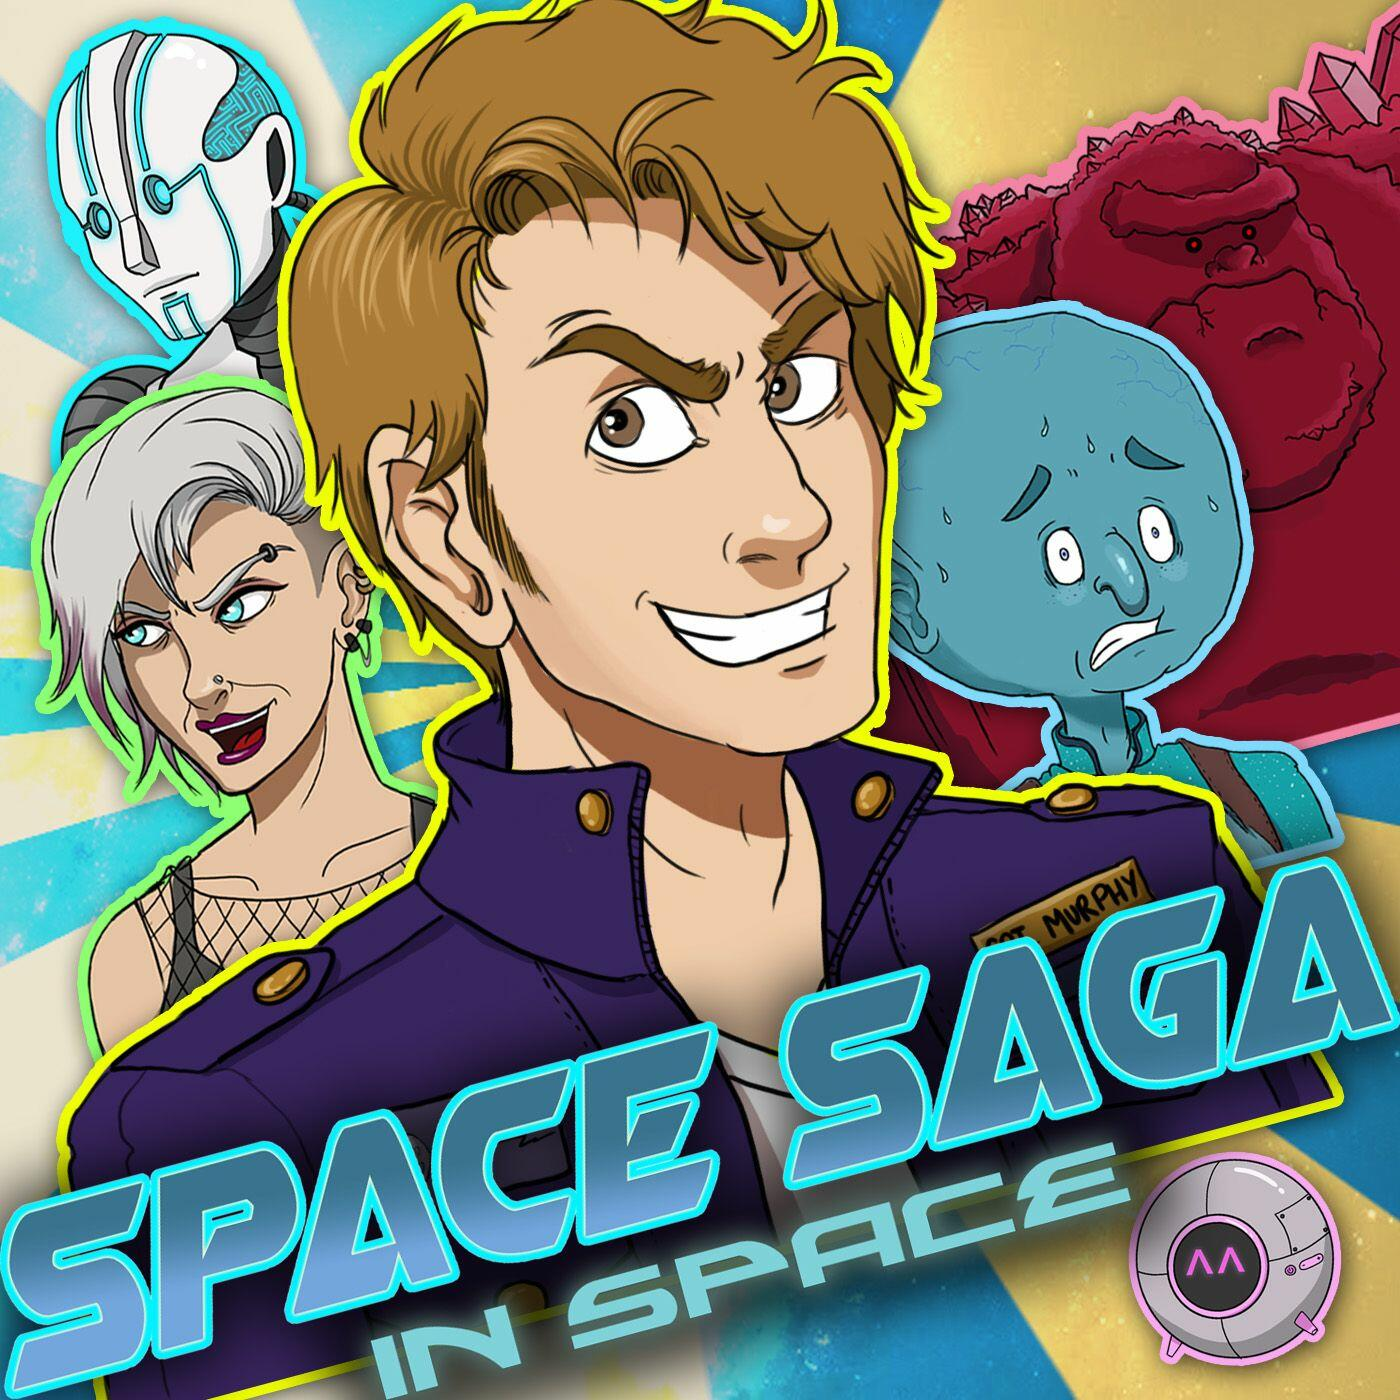 Space Saga (In Space)